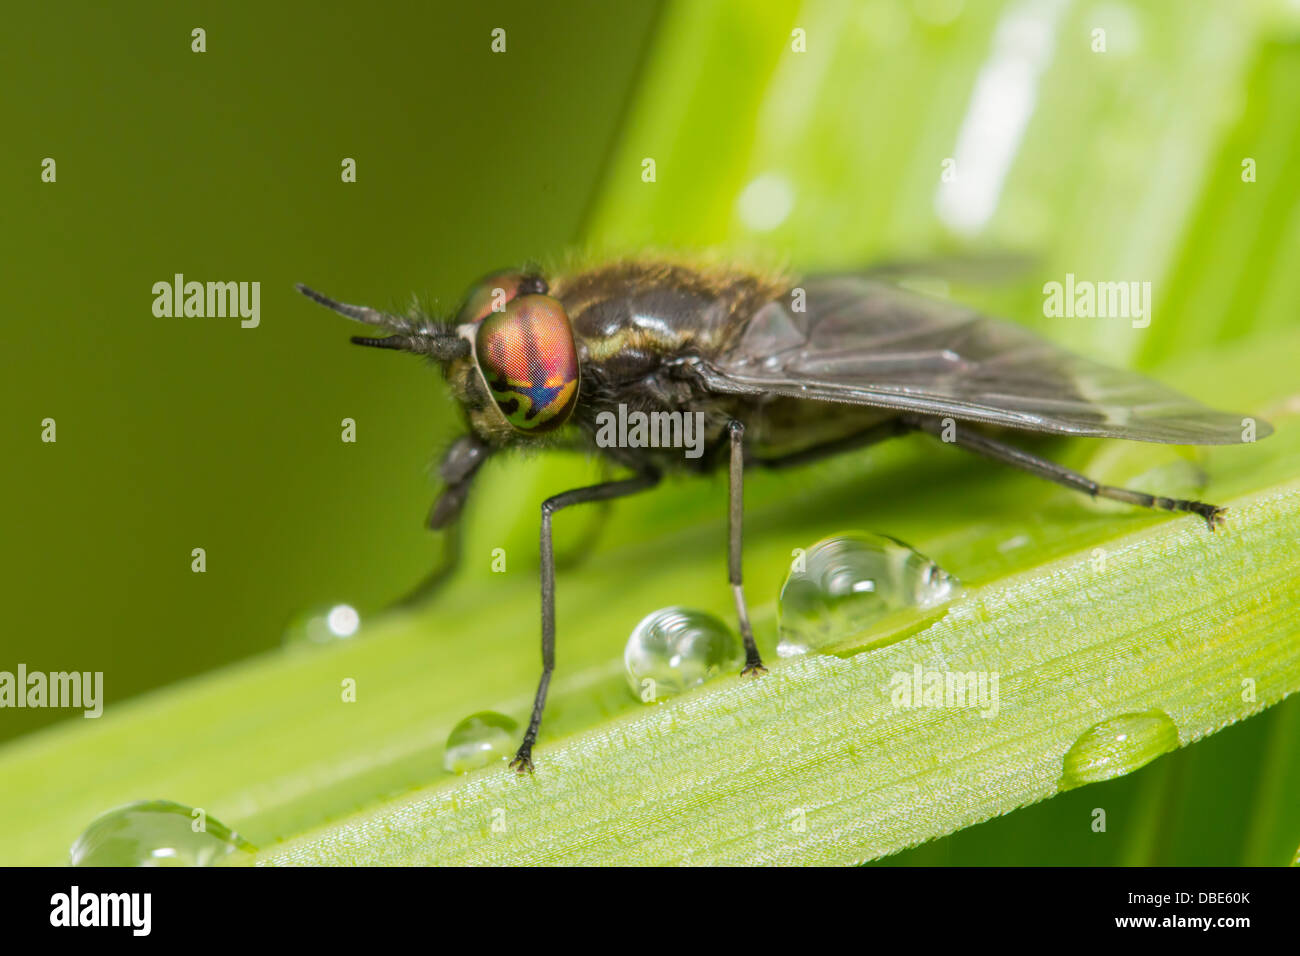 Deer fly perched on a green leaf full of dew Stock Photo